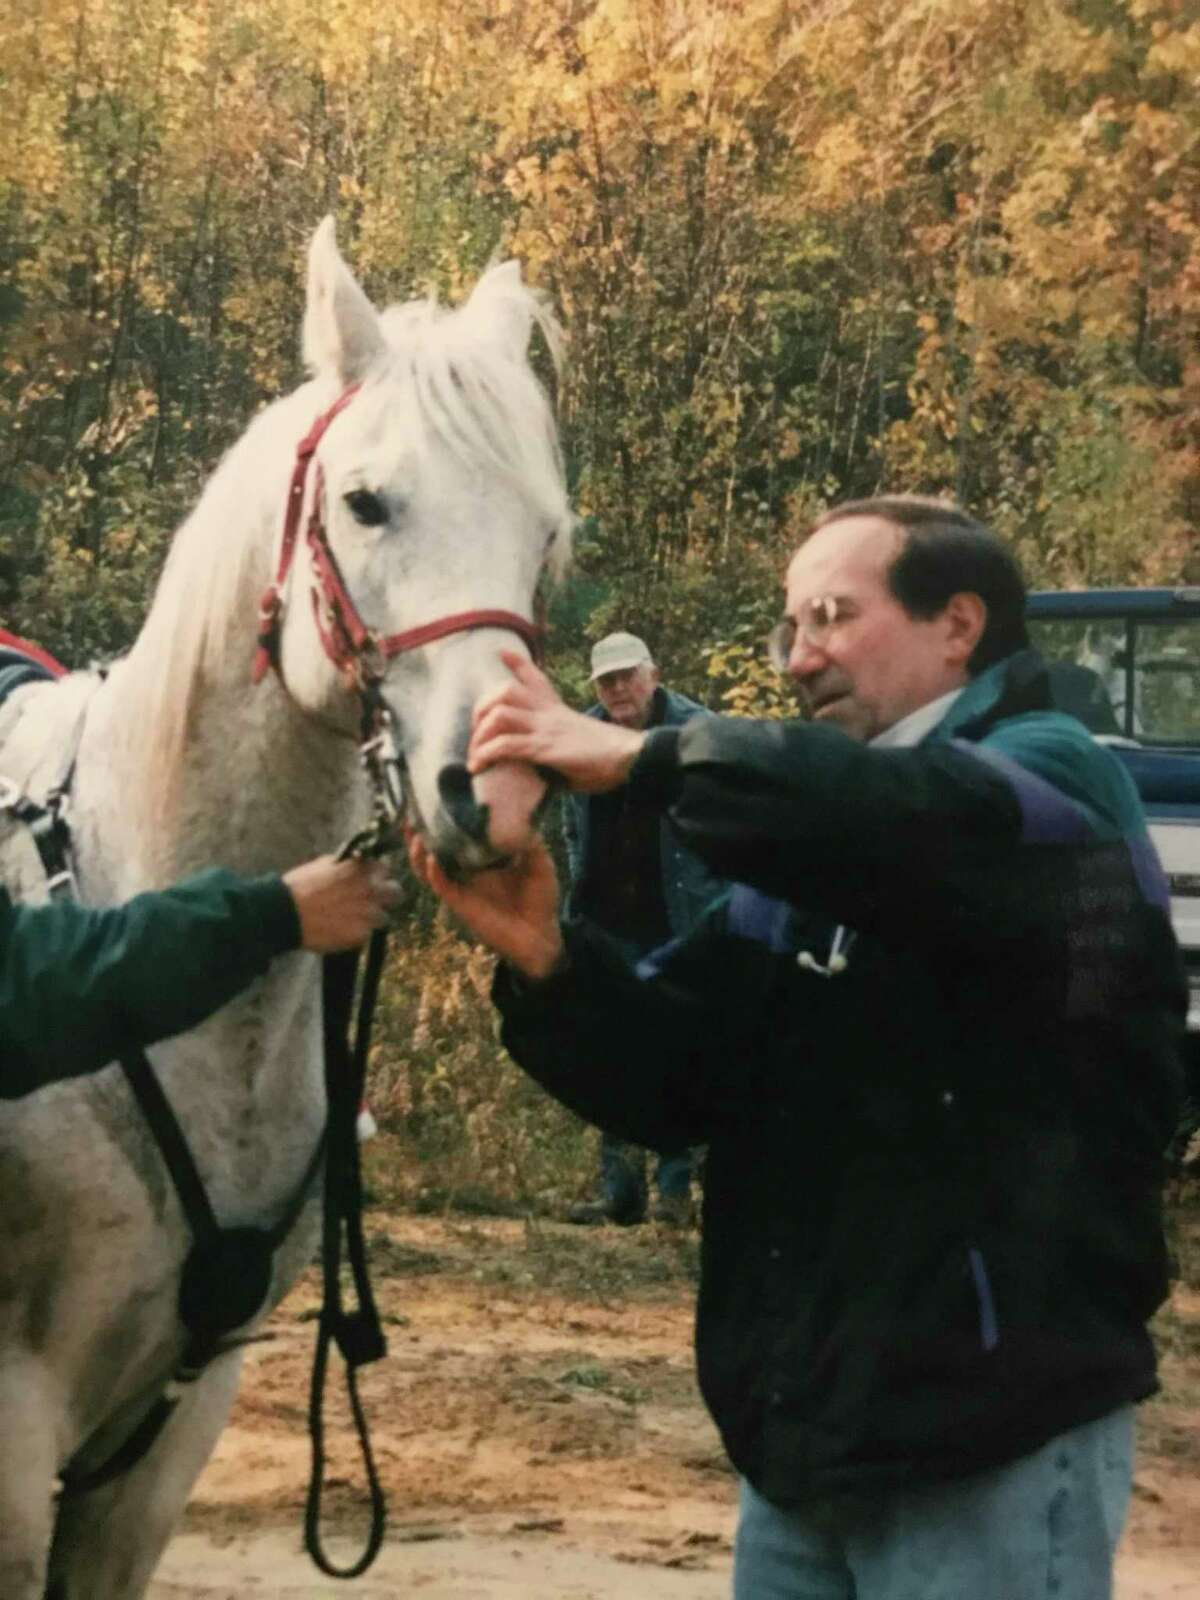 Aspetuck Animal Hospital in New Preston turned 50 in September. Founded by veterinarian Ferris Gorra, the business is now co-owned by Ferris' son, Michael Gorra, and Patricia Grinnell. Above is a photograph of Ferris examining a horse in the early years of his practice.